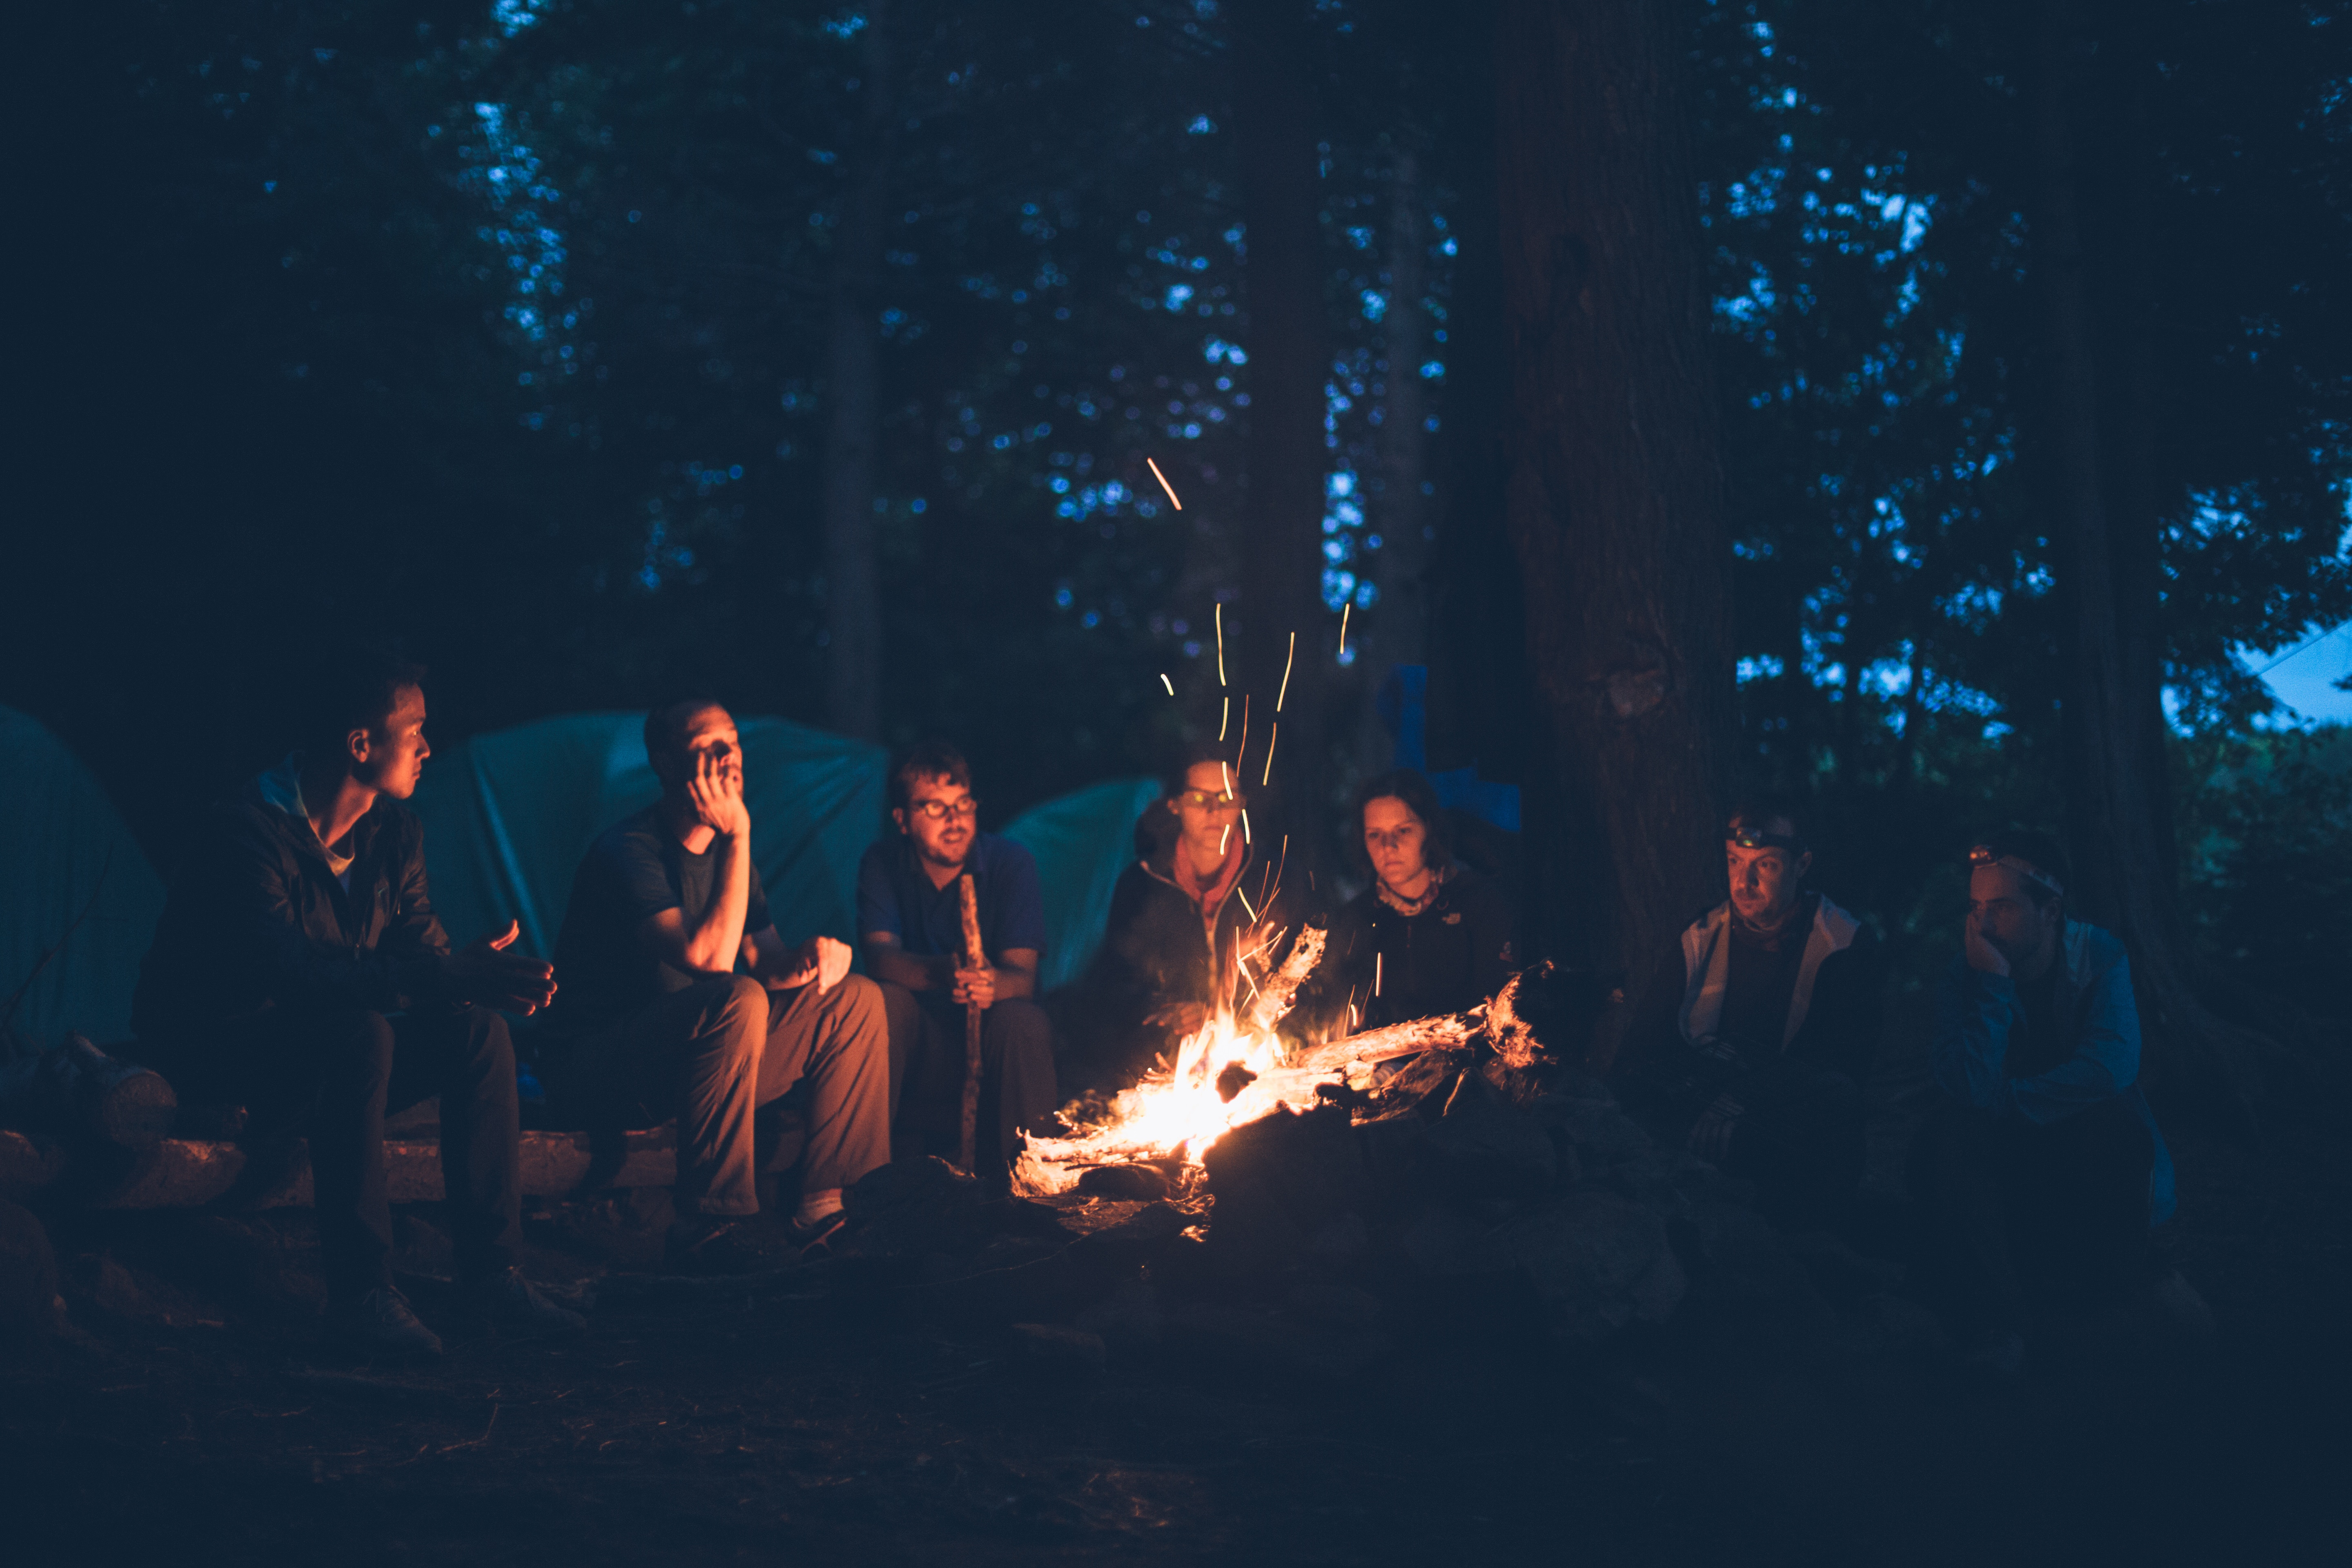 A group of people, laughing around a campfire